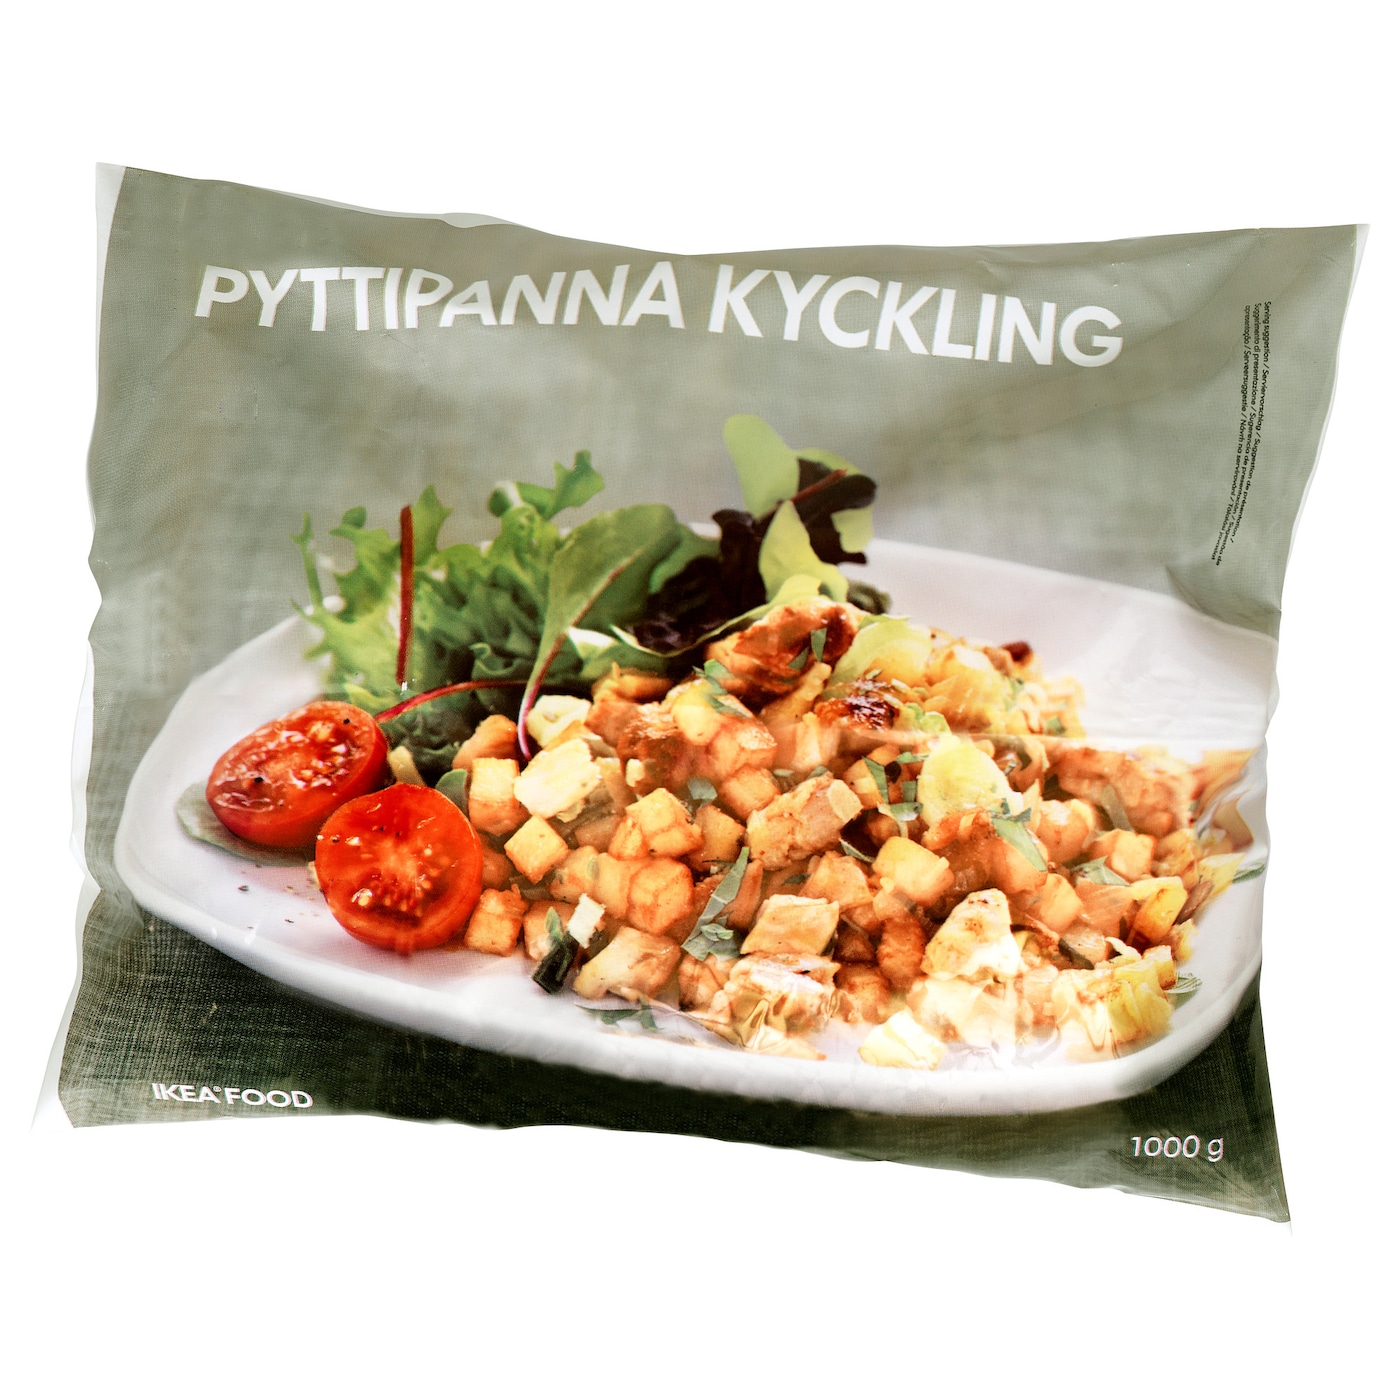 IKEA PYTTIPANNA KYCKLING potato hash with chicken, frozen